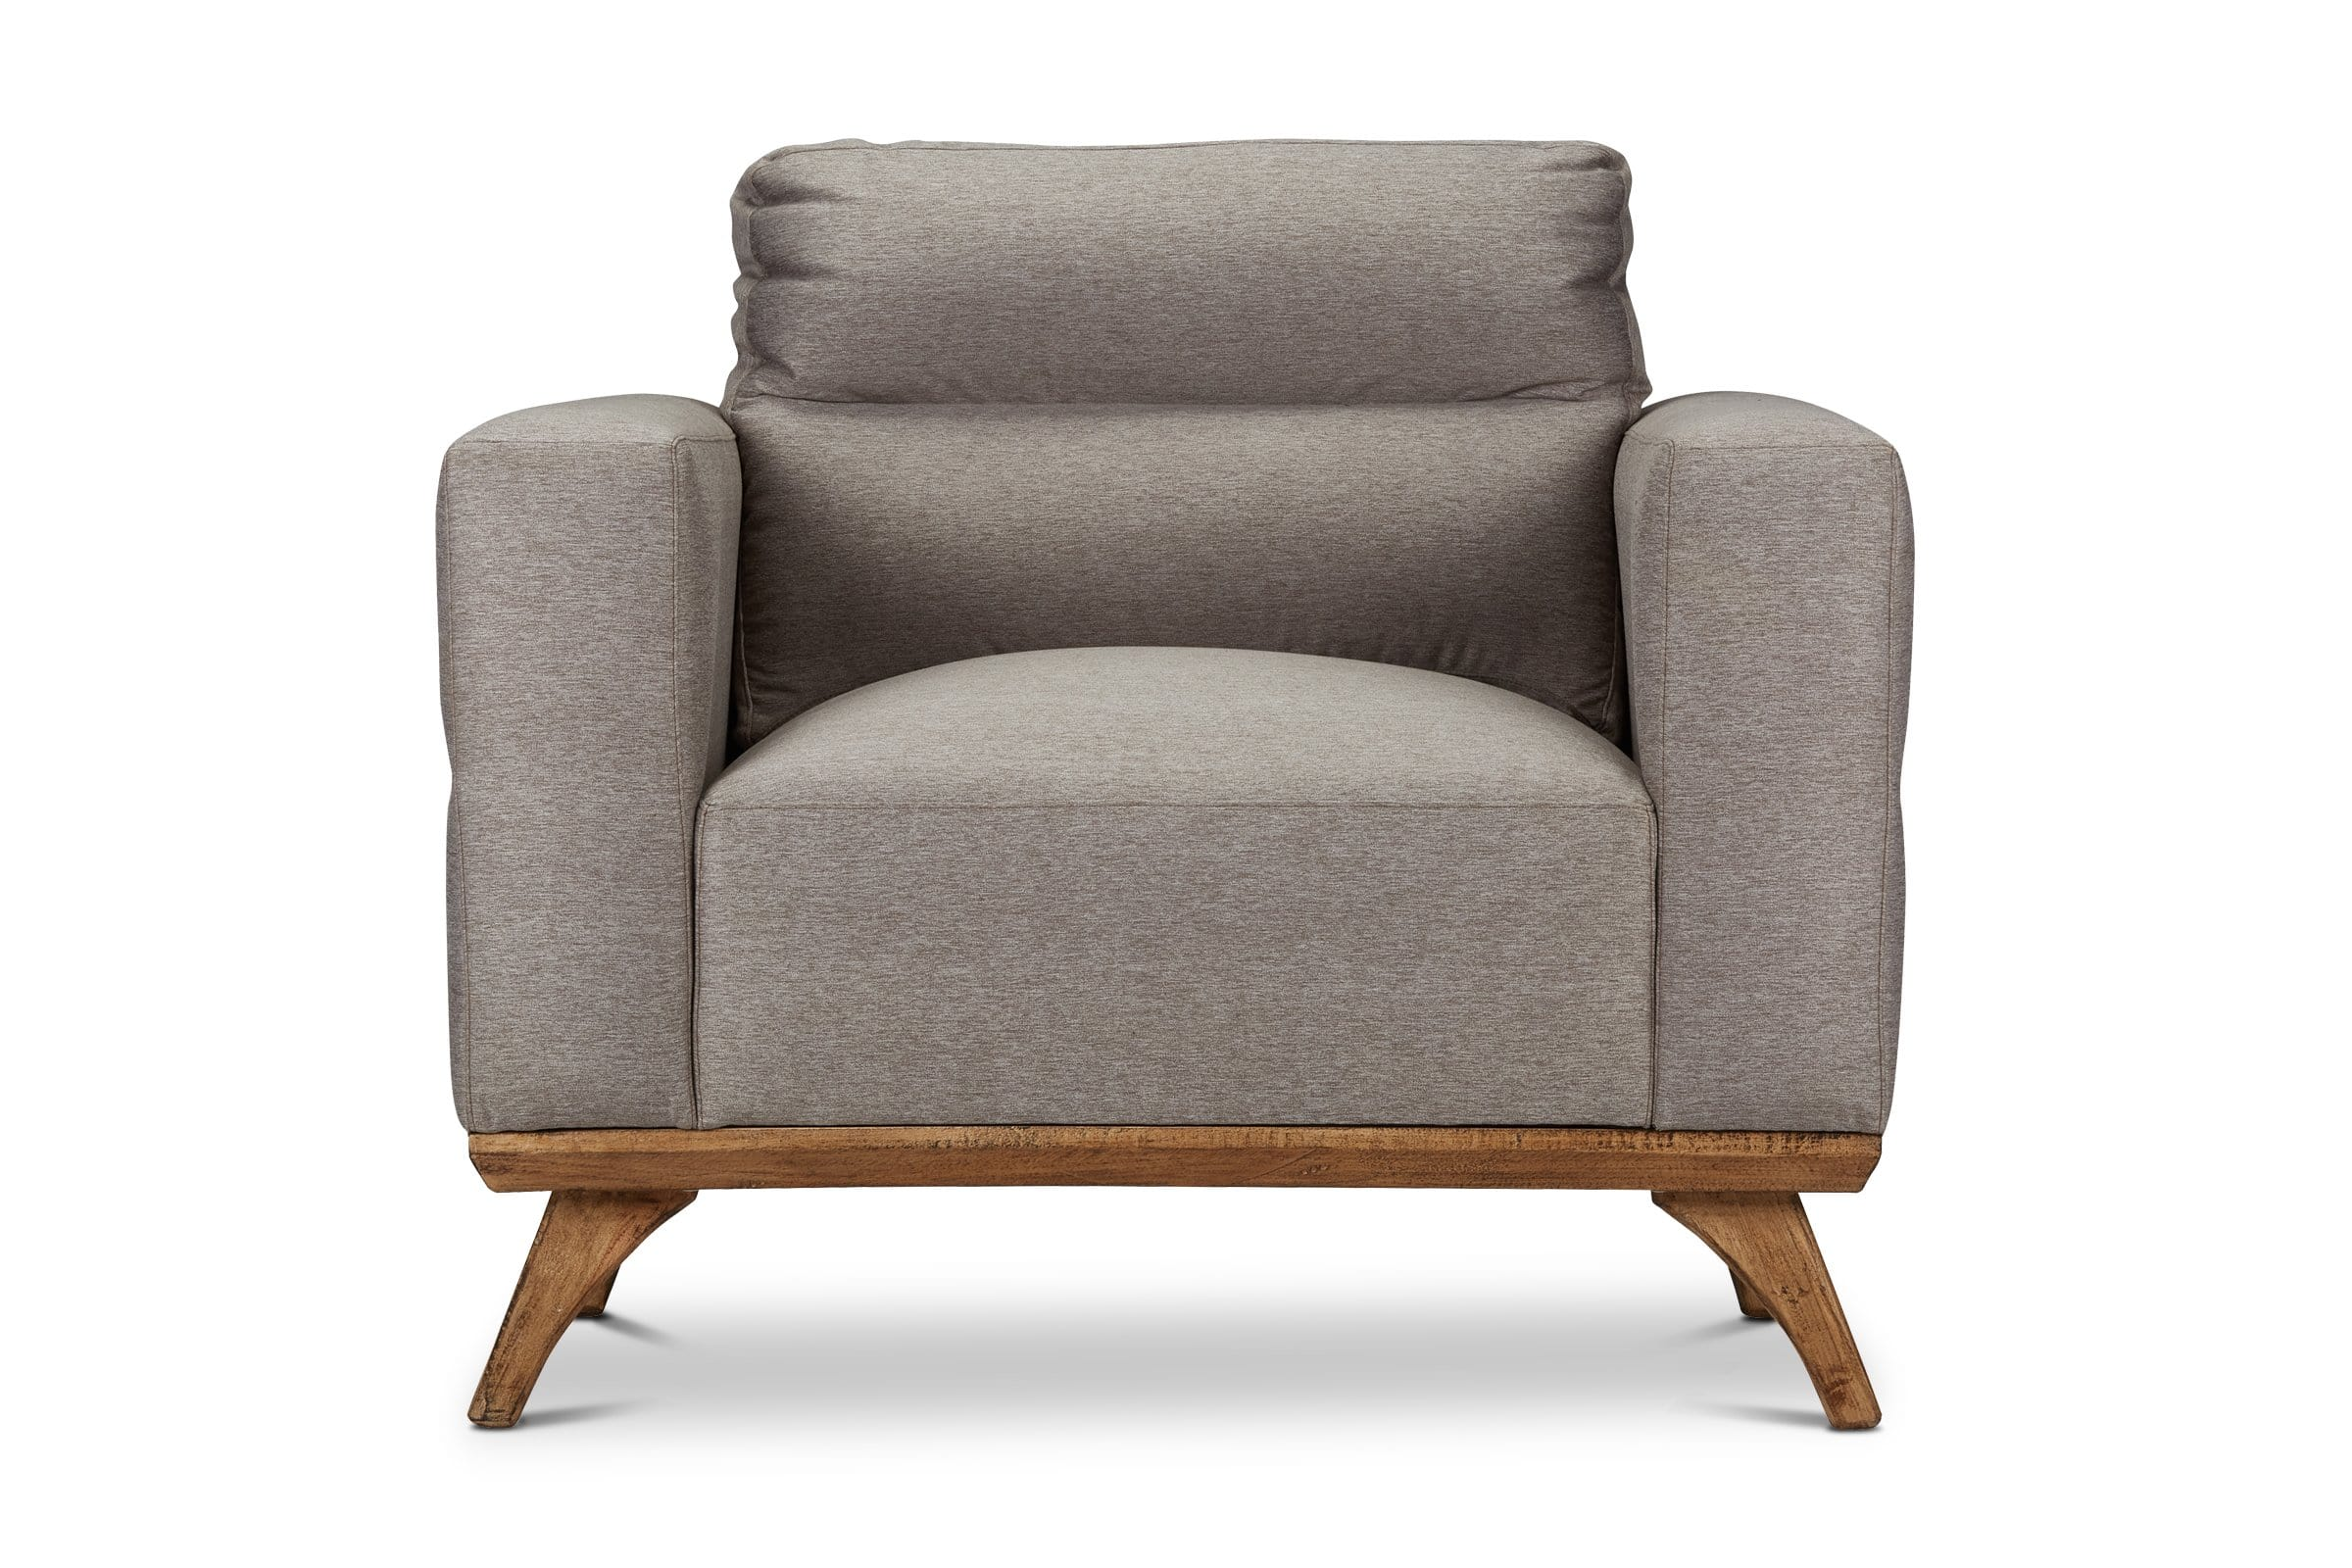 Embry Chair - Grey - Modern Furniture - Sold by Apt2B - Modern Accent Chair - Sold by Apt2B